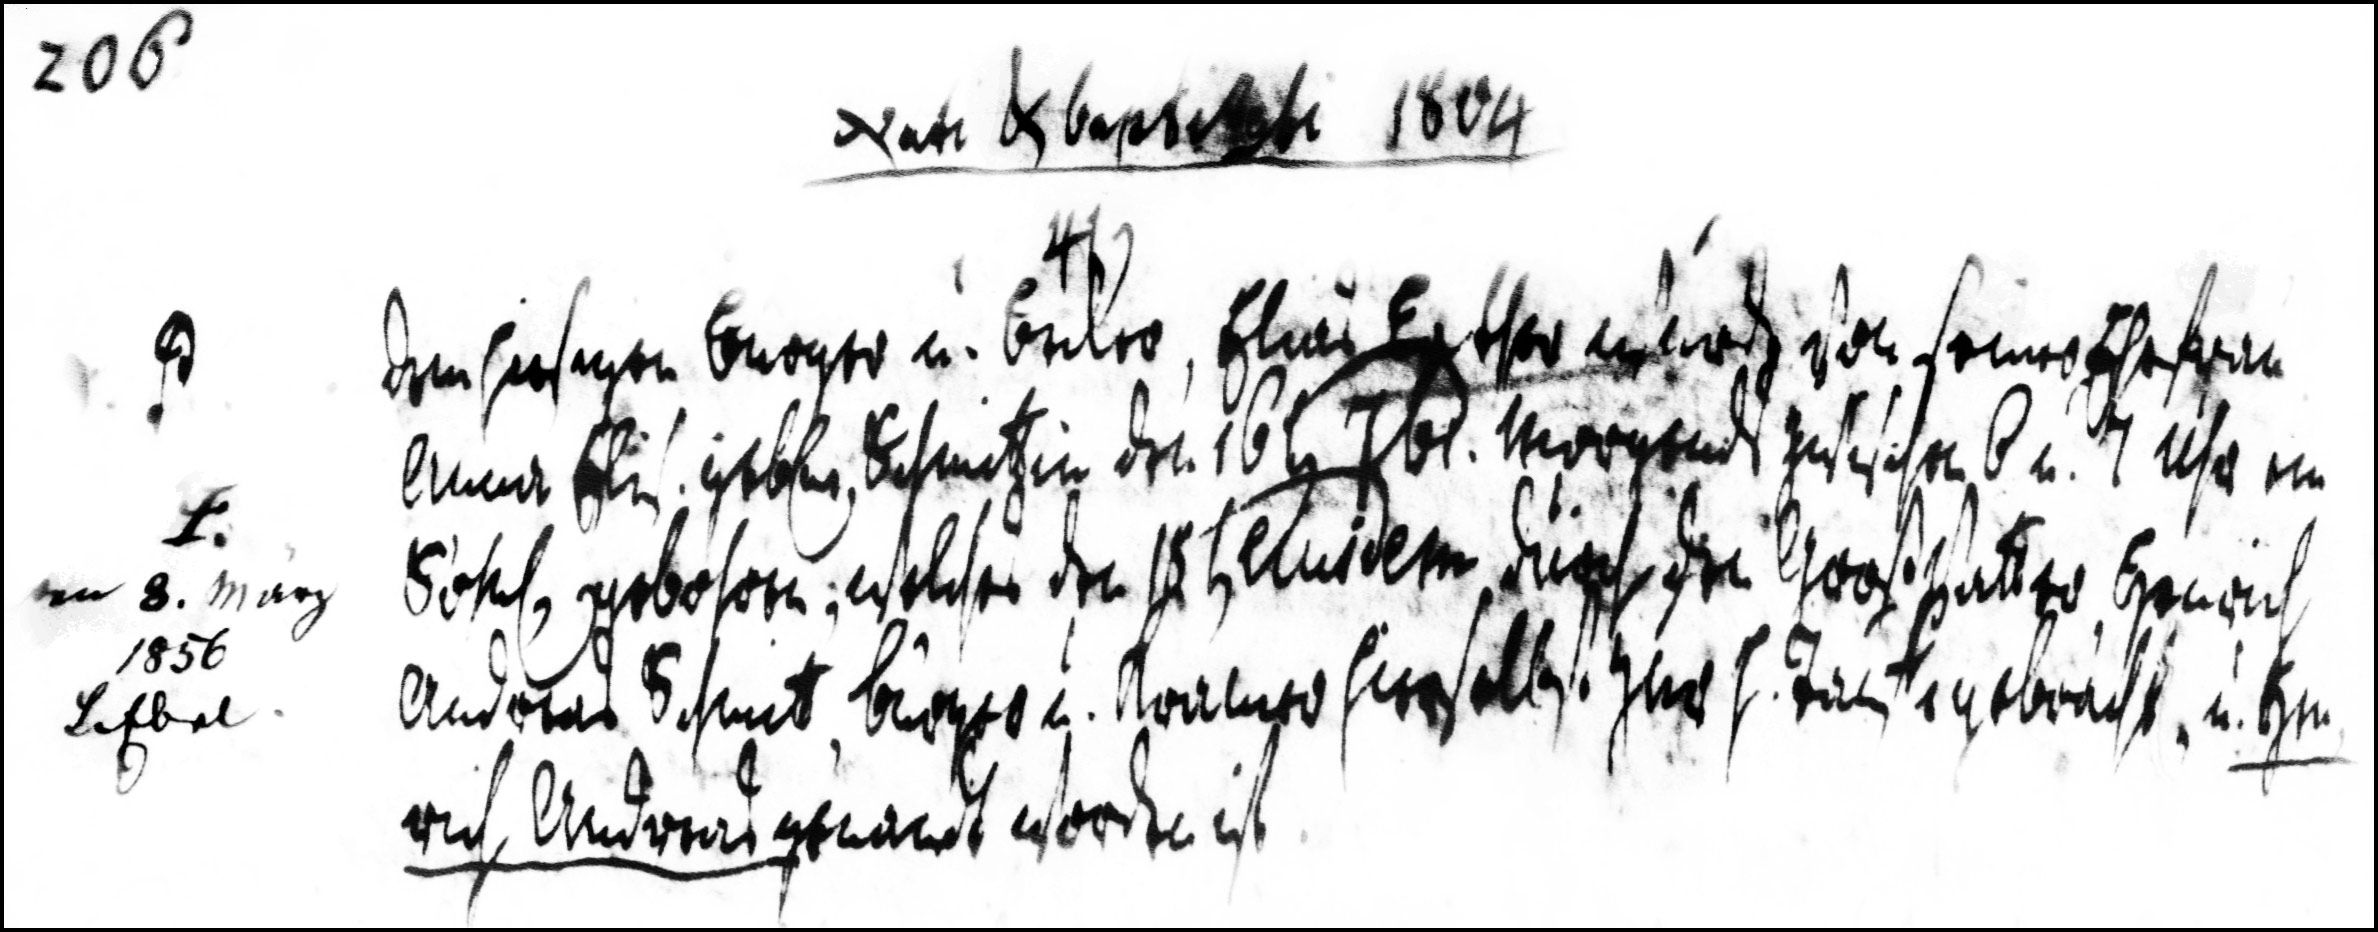 The Birth and Baptismal Record of Henrich Andreas Lather - 1804